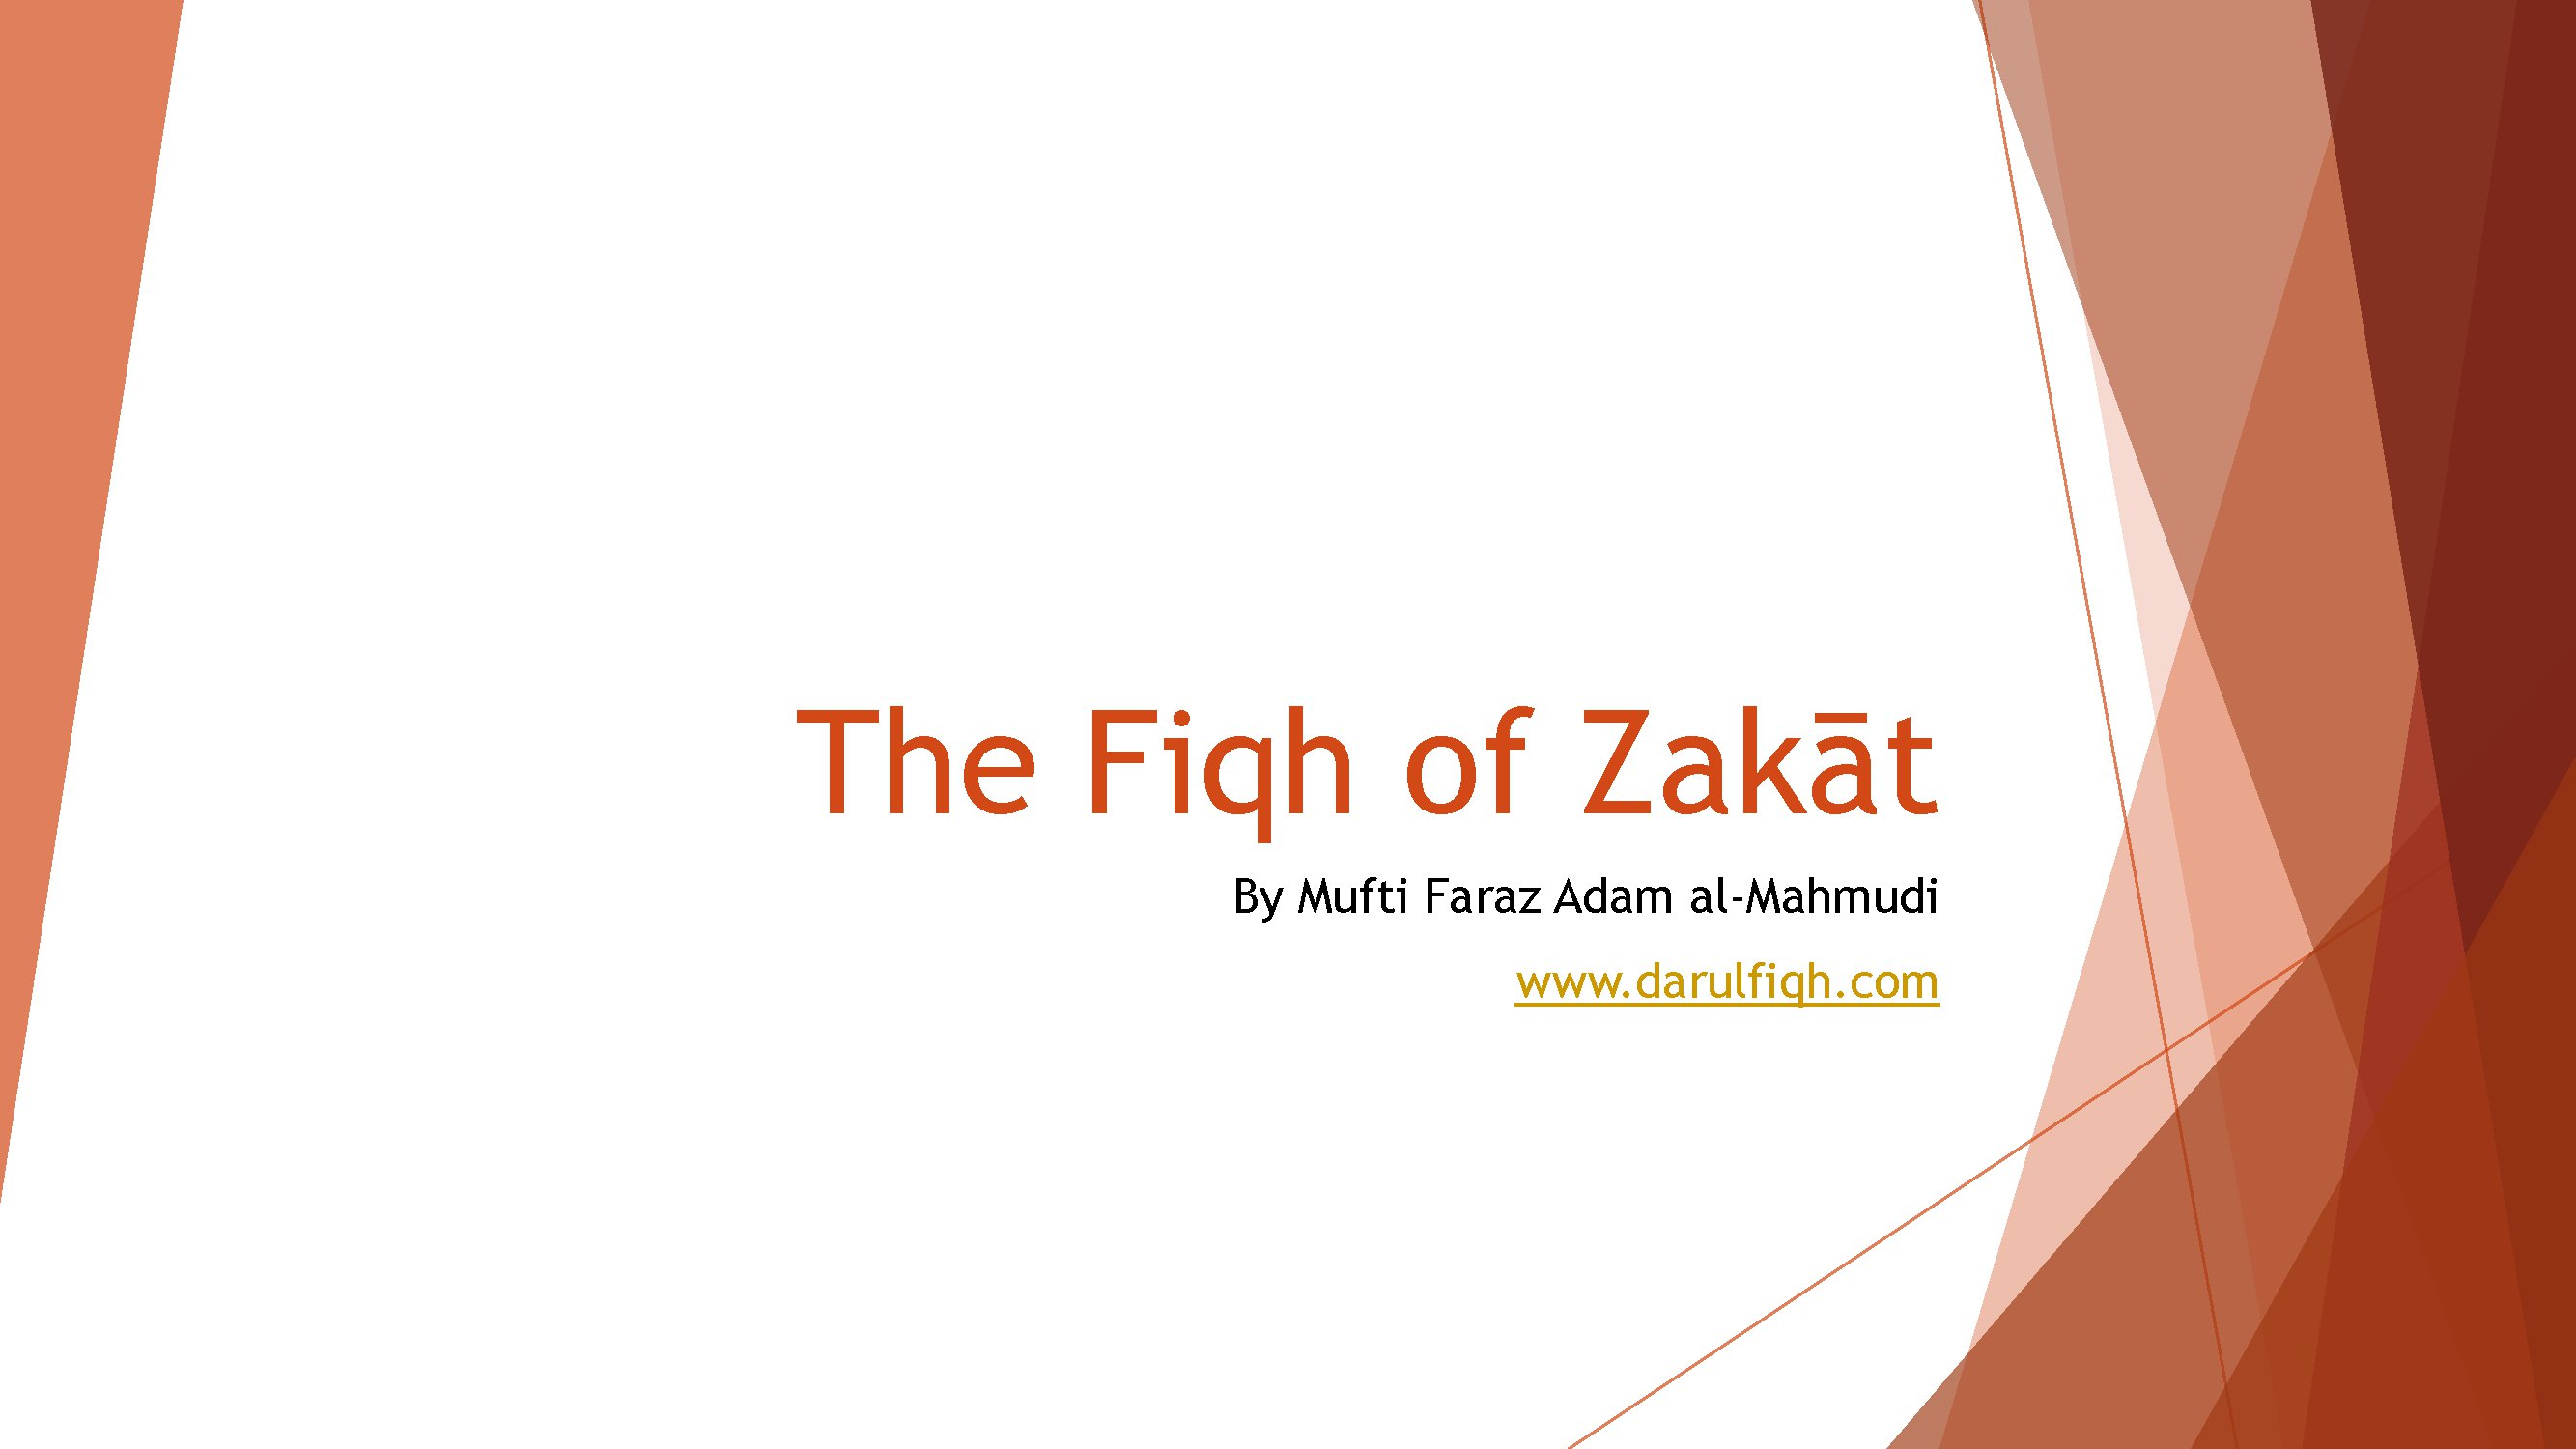 The Fiqh Of Zakaat (Presentation) by Mufti Faraz Adam al-Mahmudi